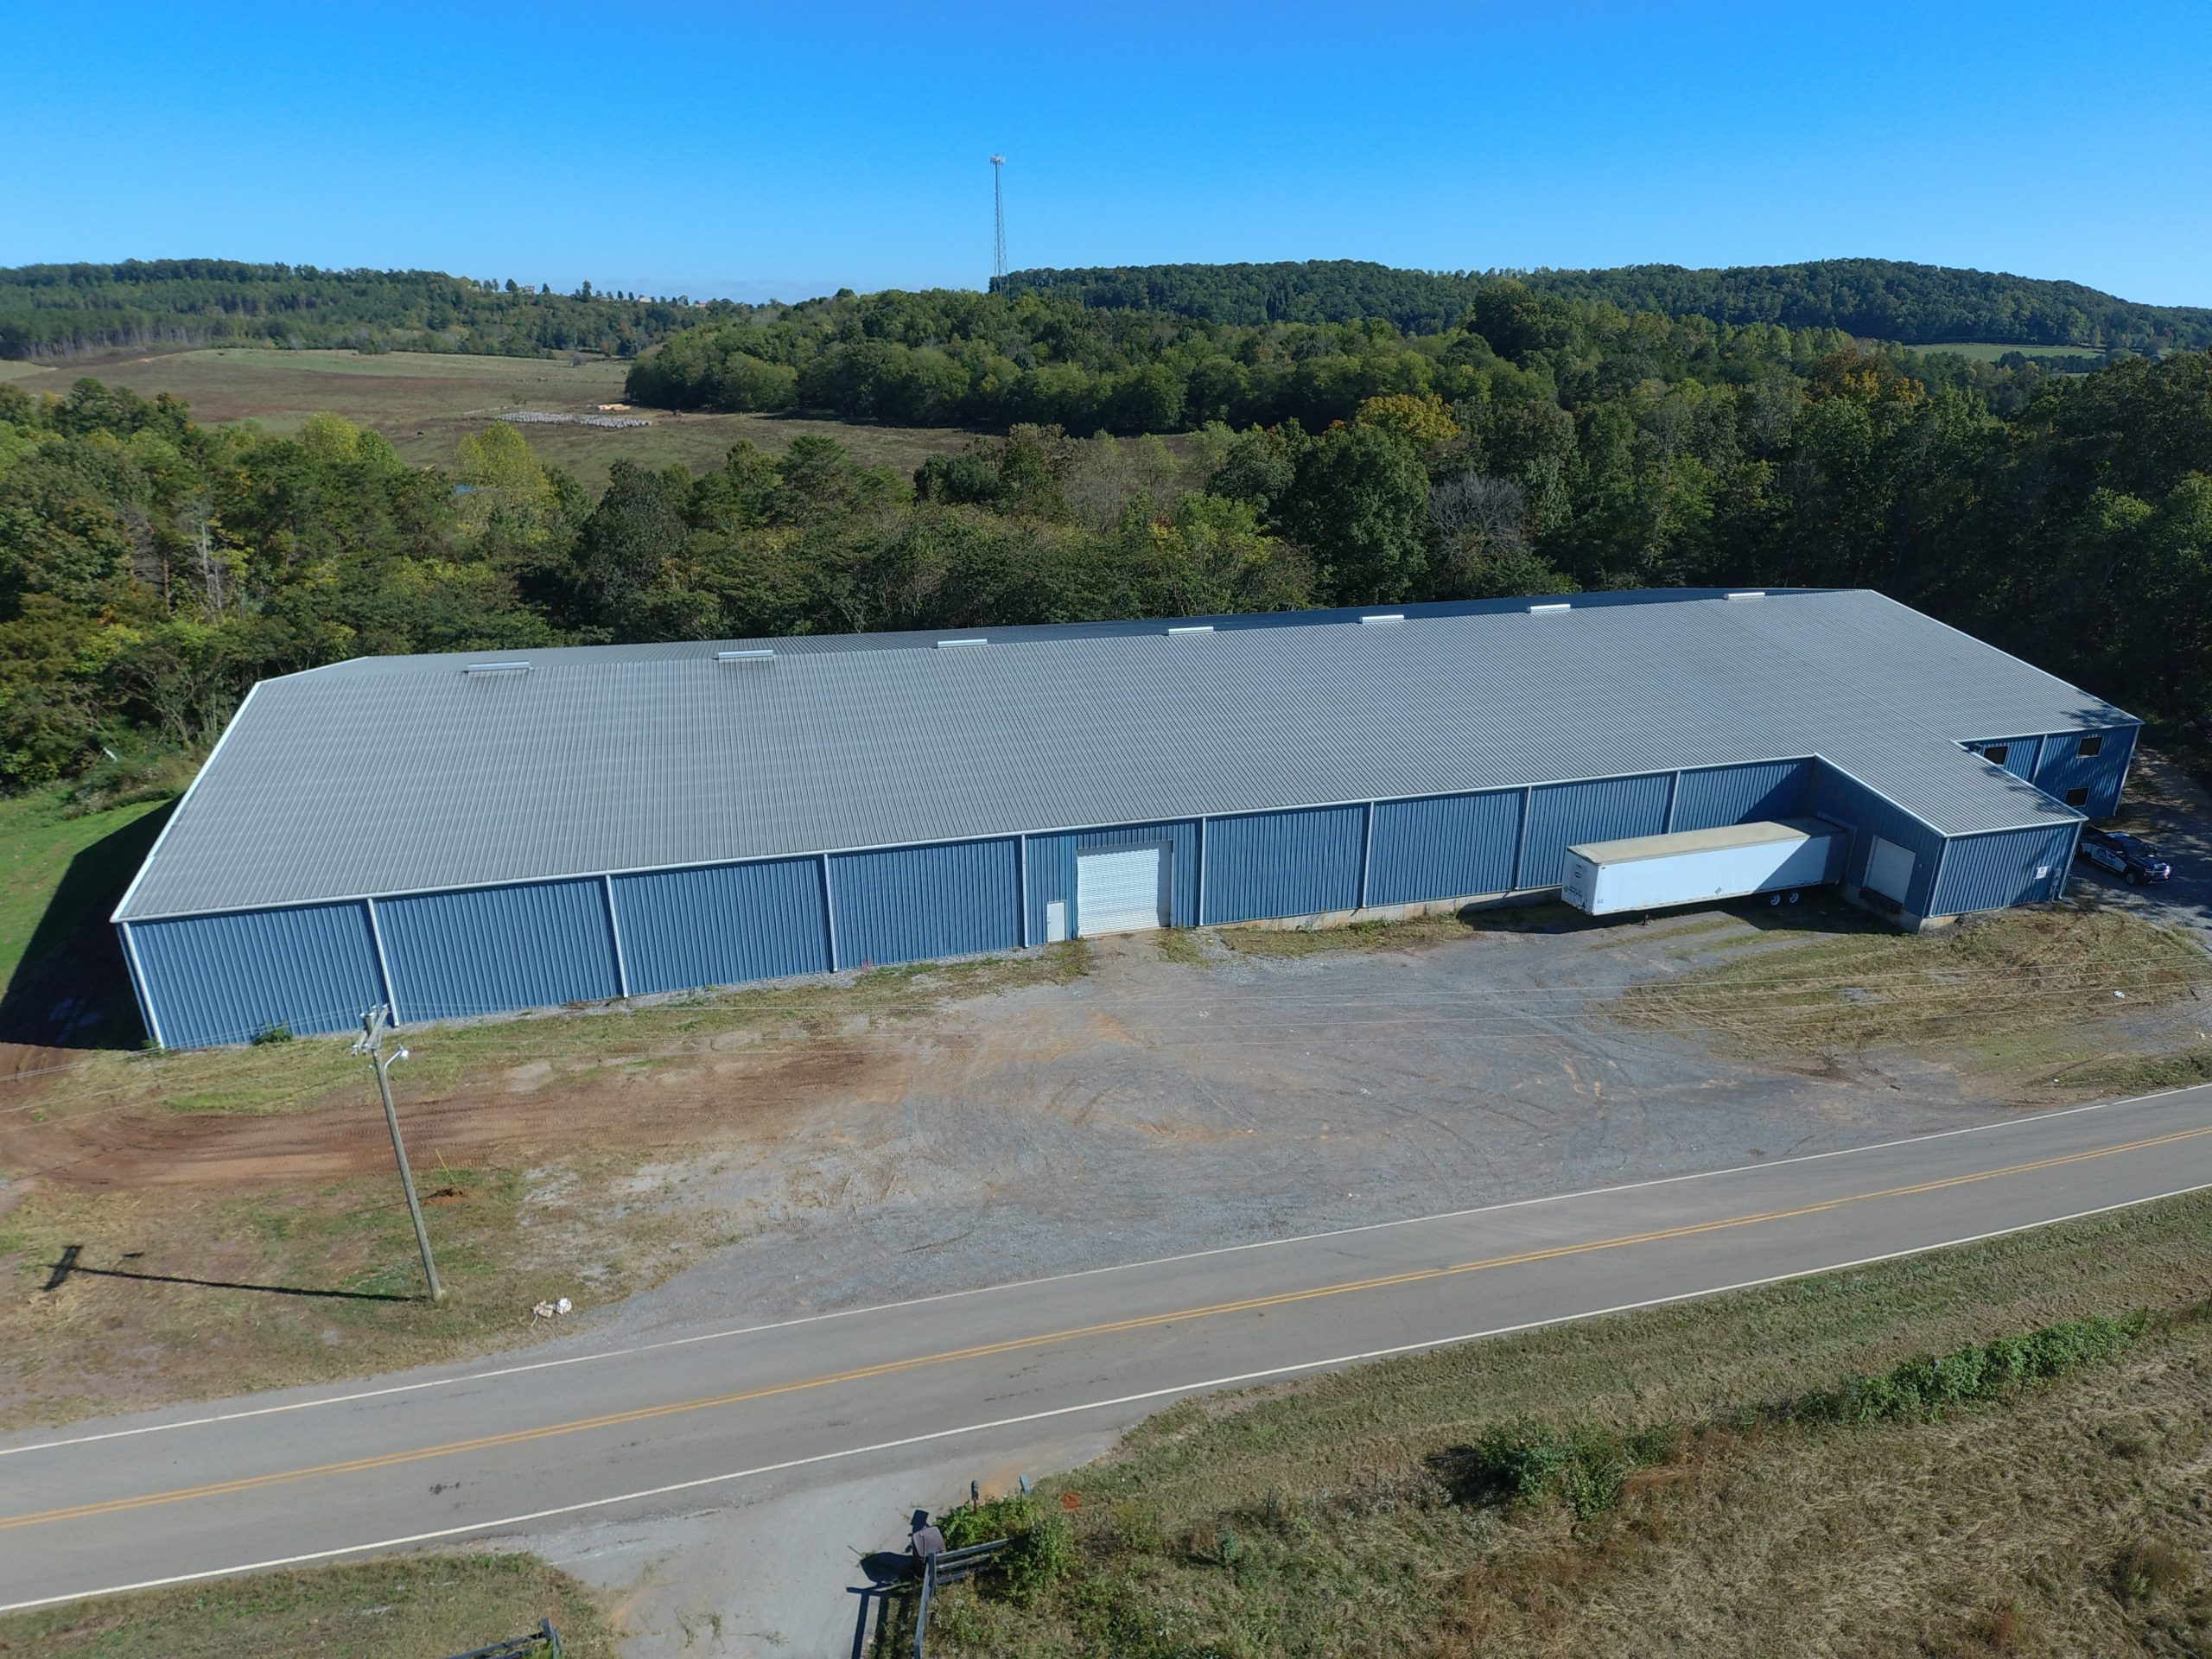 Industrial Property with Manufacturing Building for Sale in Sweetwater, TN